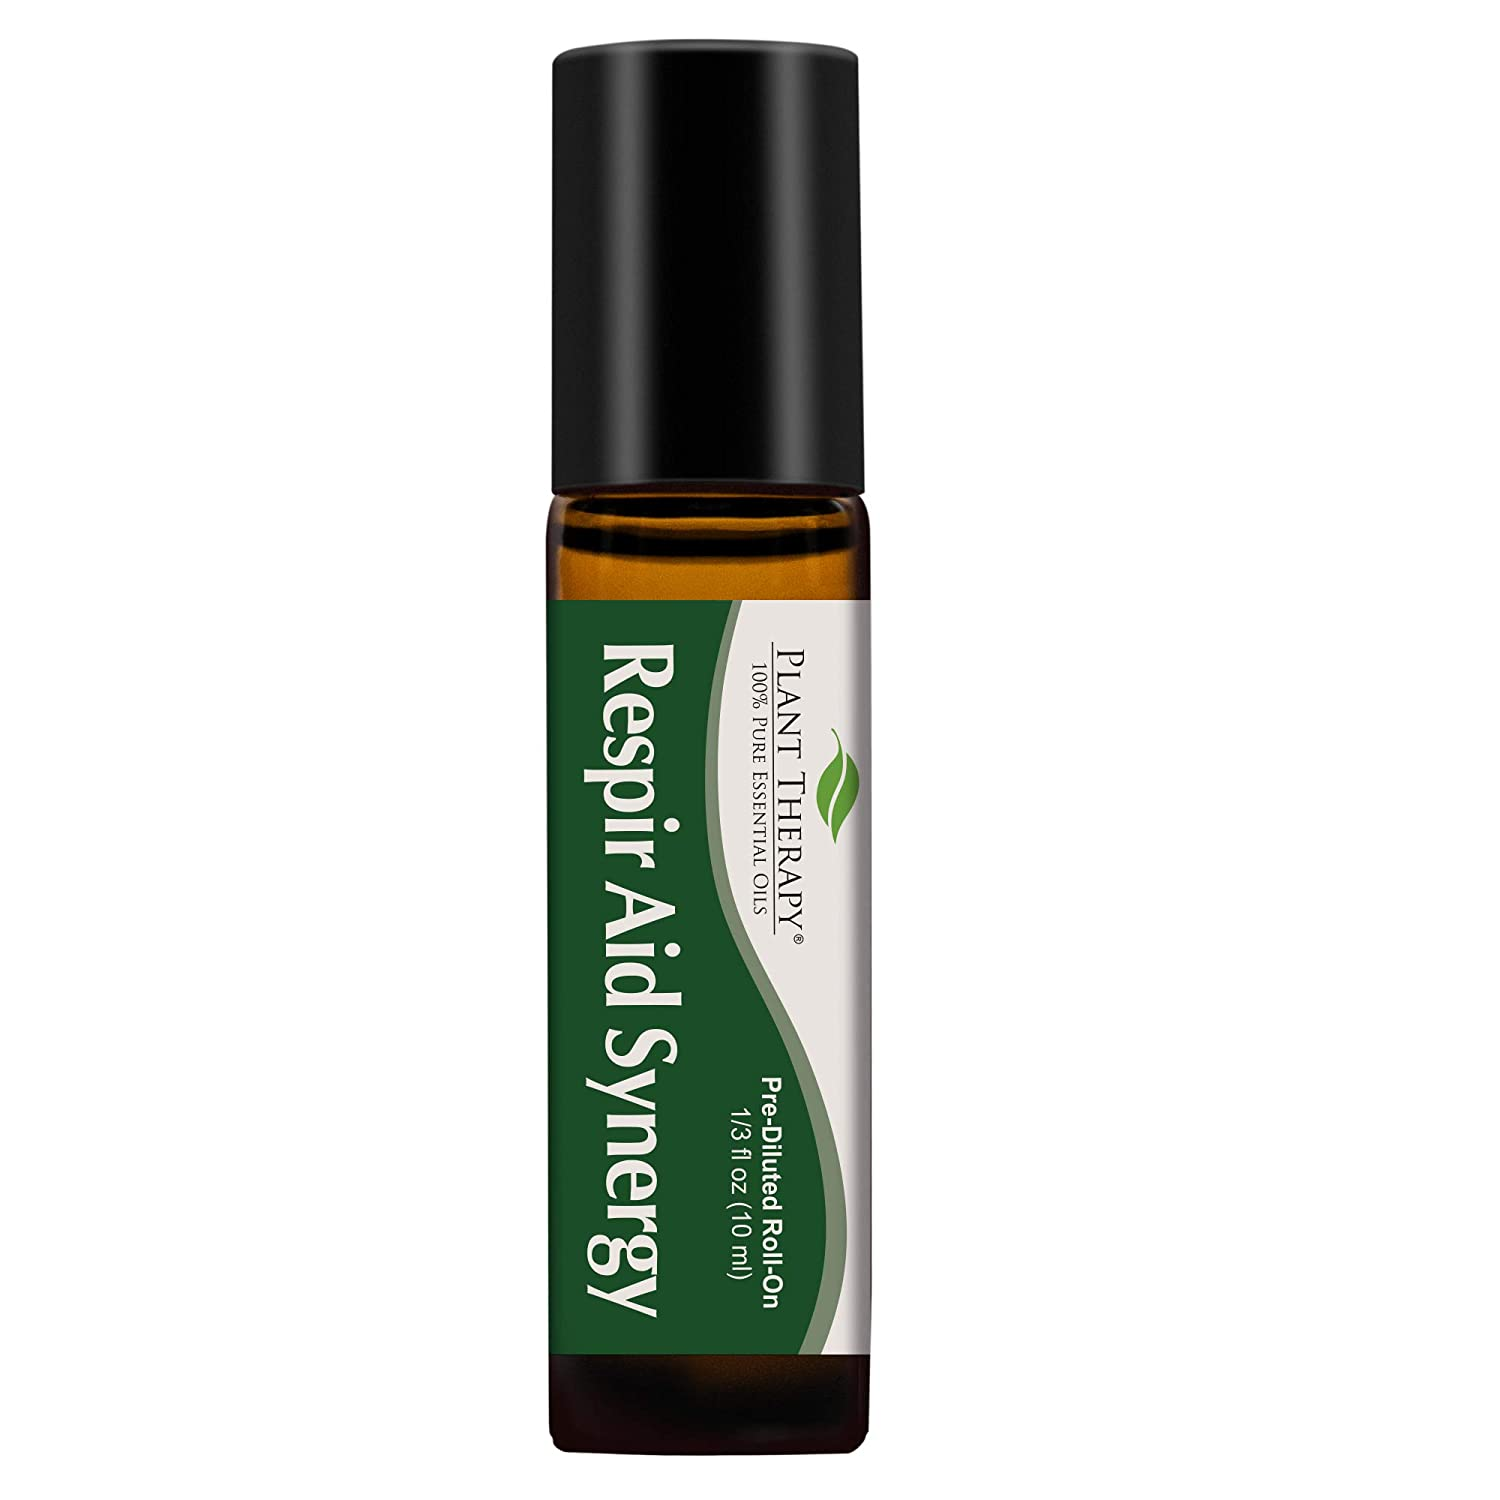 Plant Therapy Respir Aid Essential Oil - Sinus, Airway and Congestion Clearing Synergy Blend 100% Pure, Pre-Diluted Roll-On, Natural Aromatherapy, Therapeutic Grade 10 mL (1/3 oz)